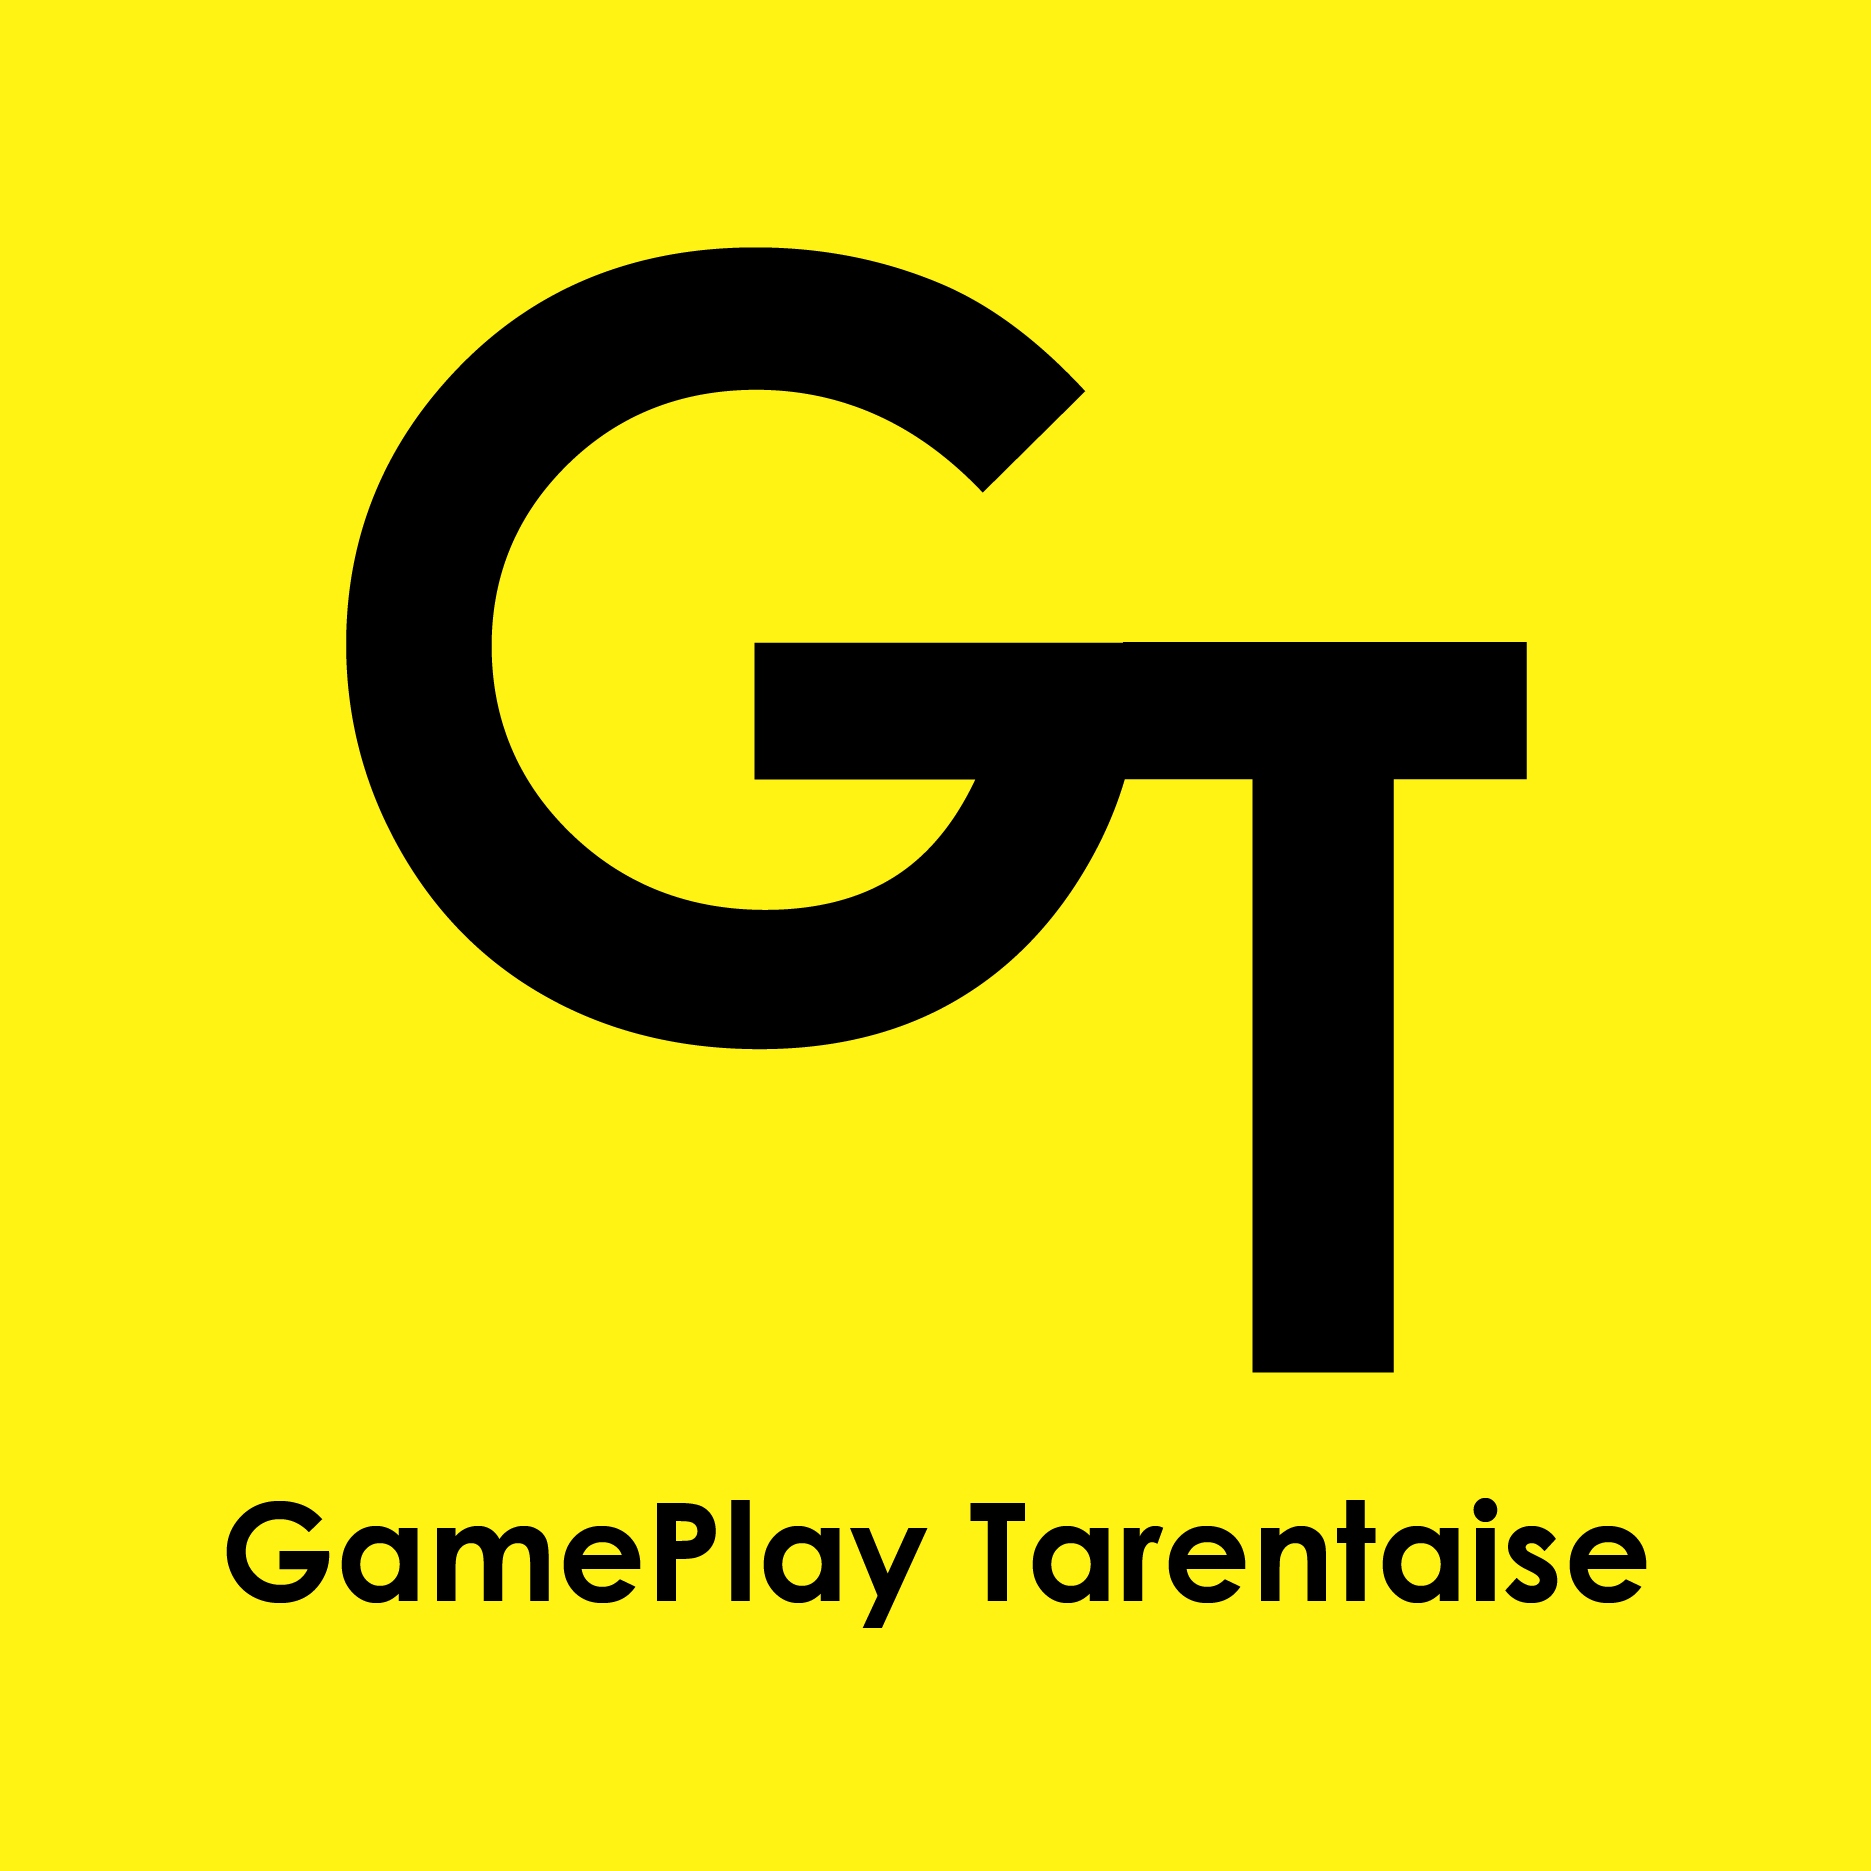 GamePlay Tarentaise